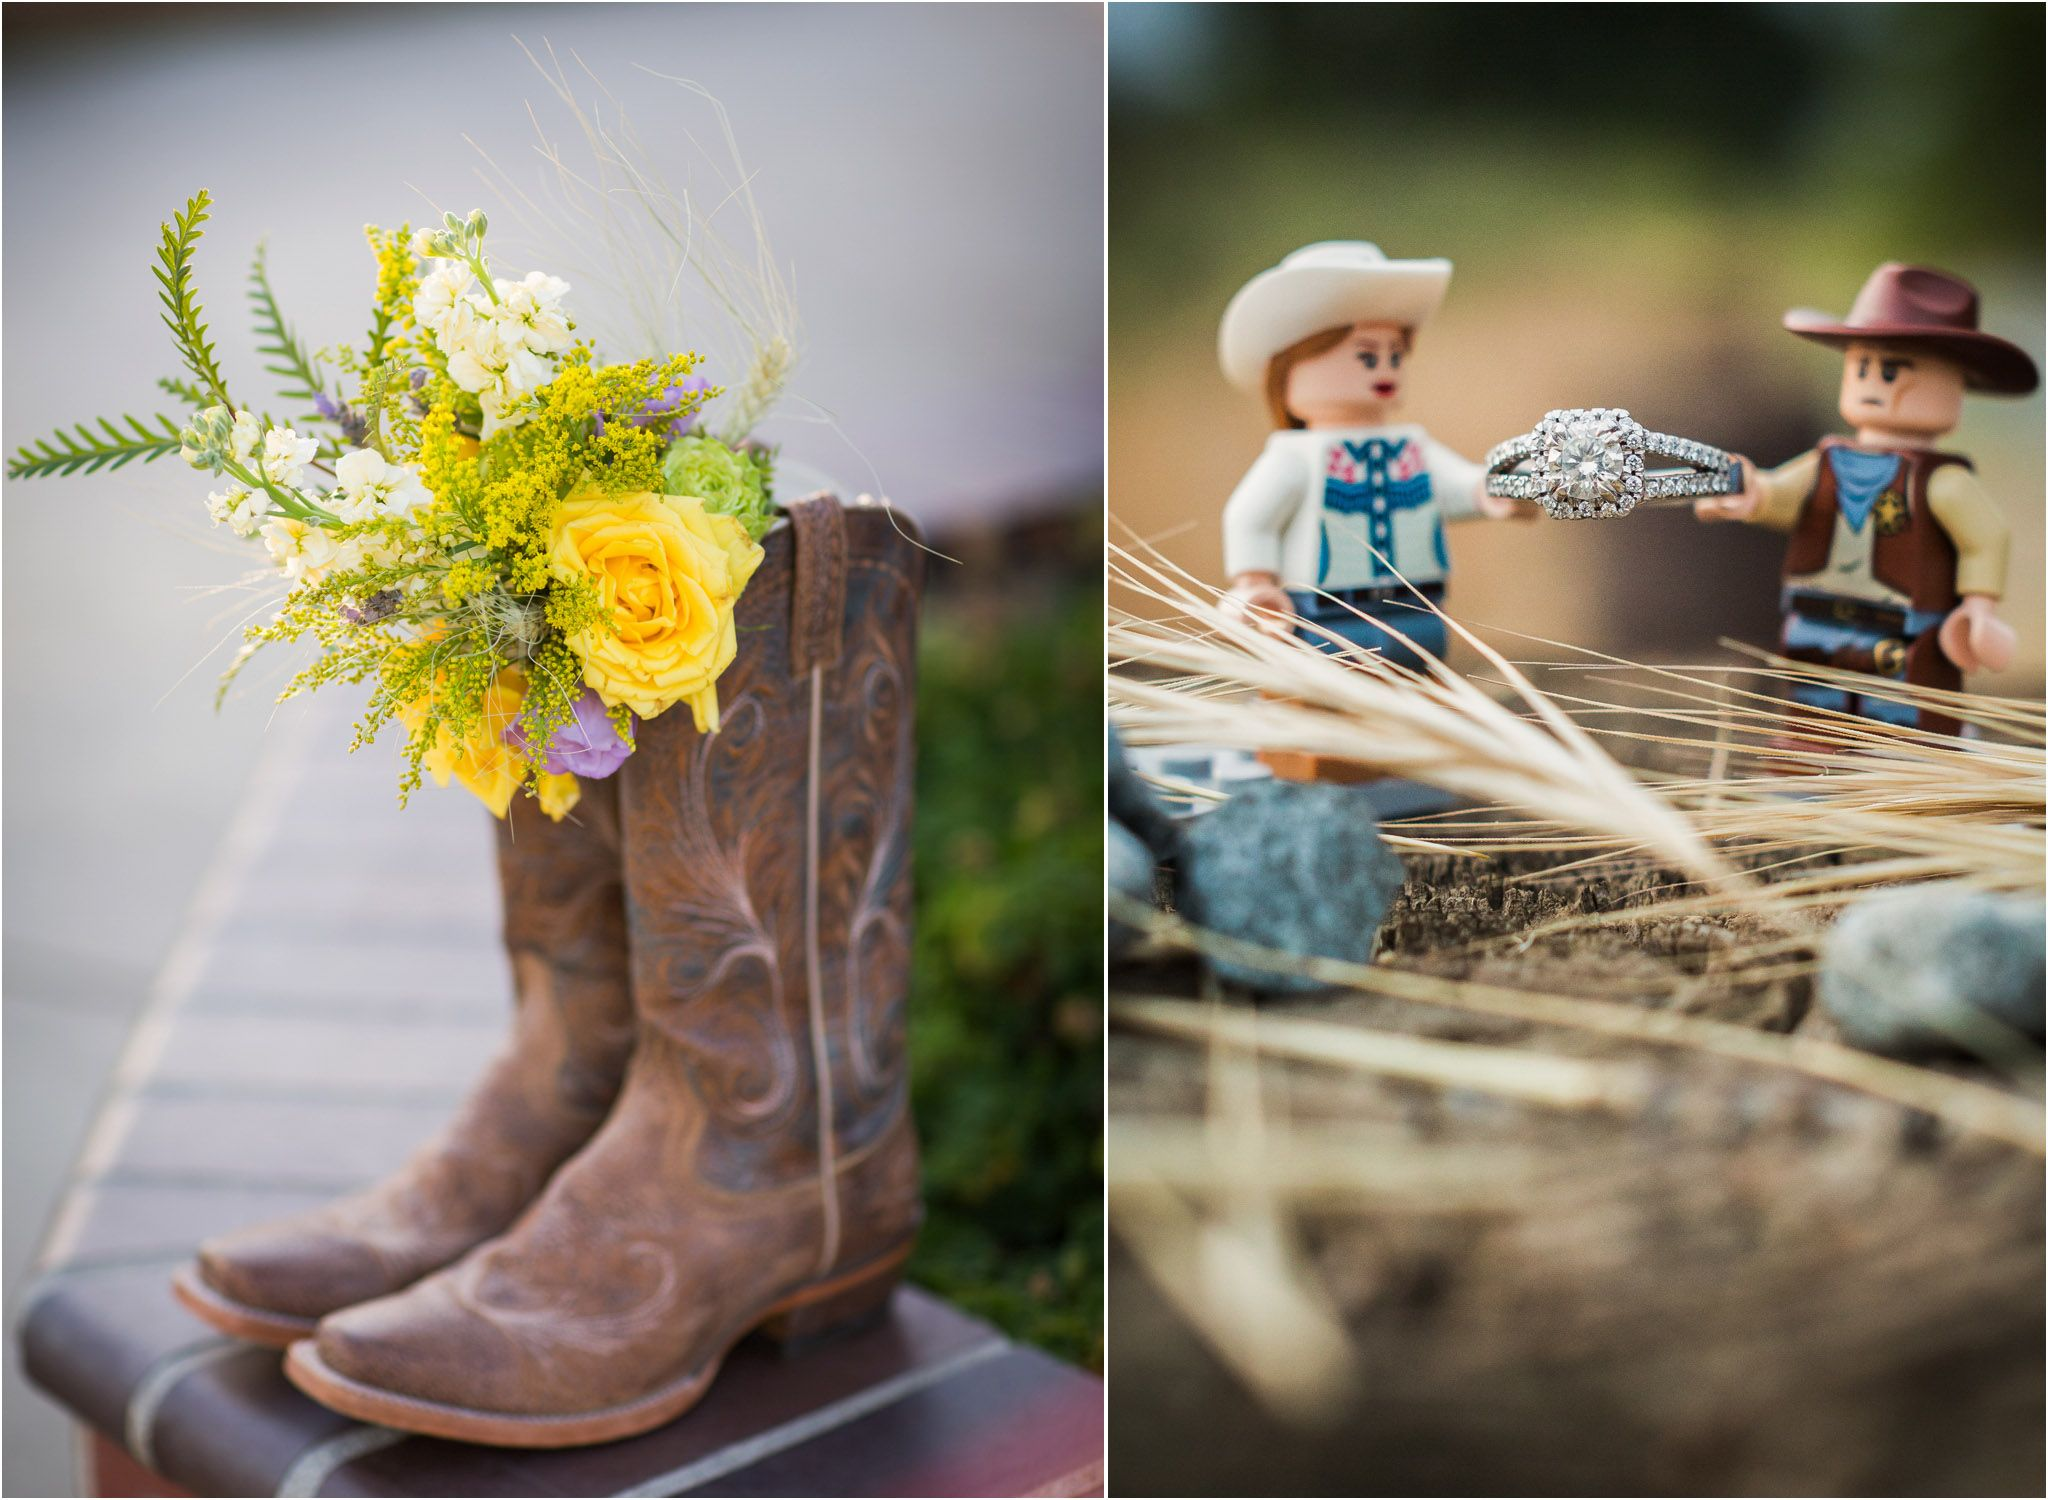 wedding cowboy boots San Diego Wedding Photography Cowboy Boots Engagement Ring Country Wedding Yellow Rose 17